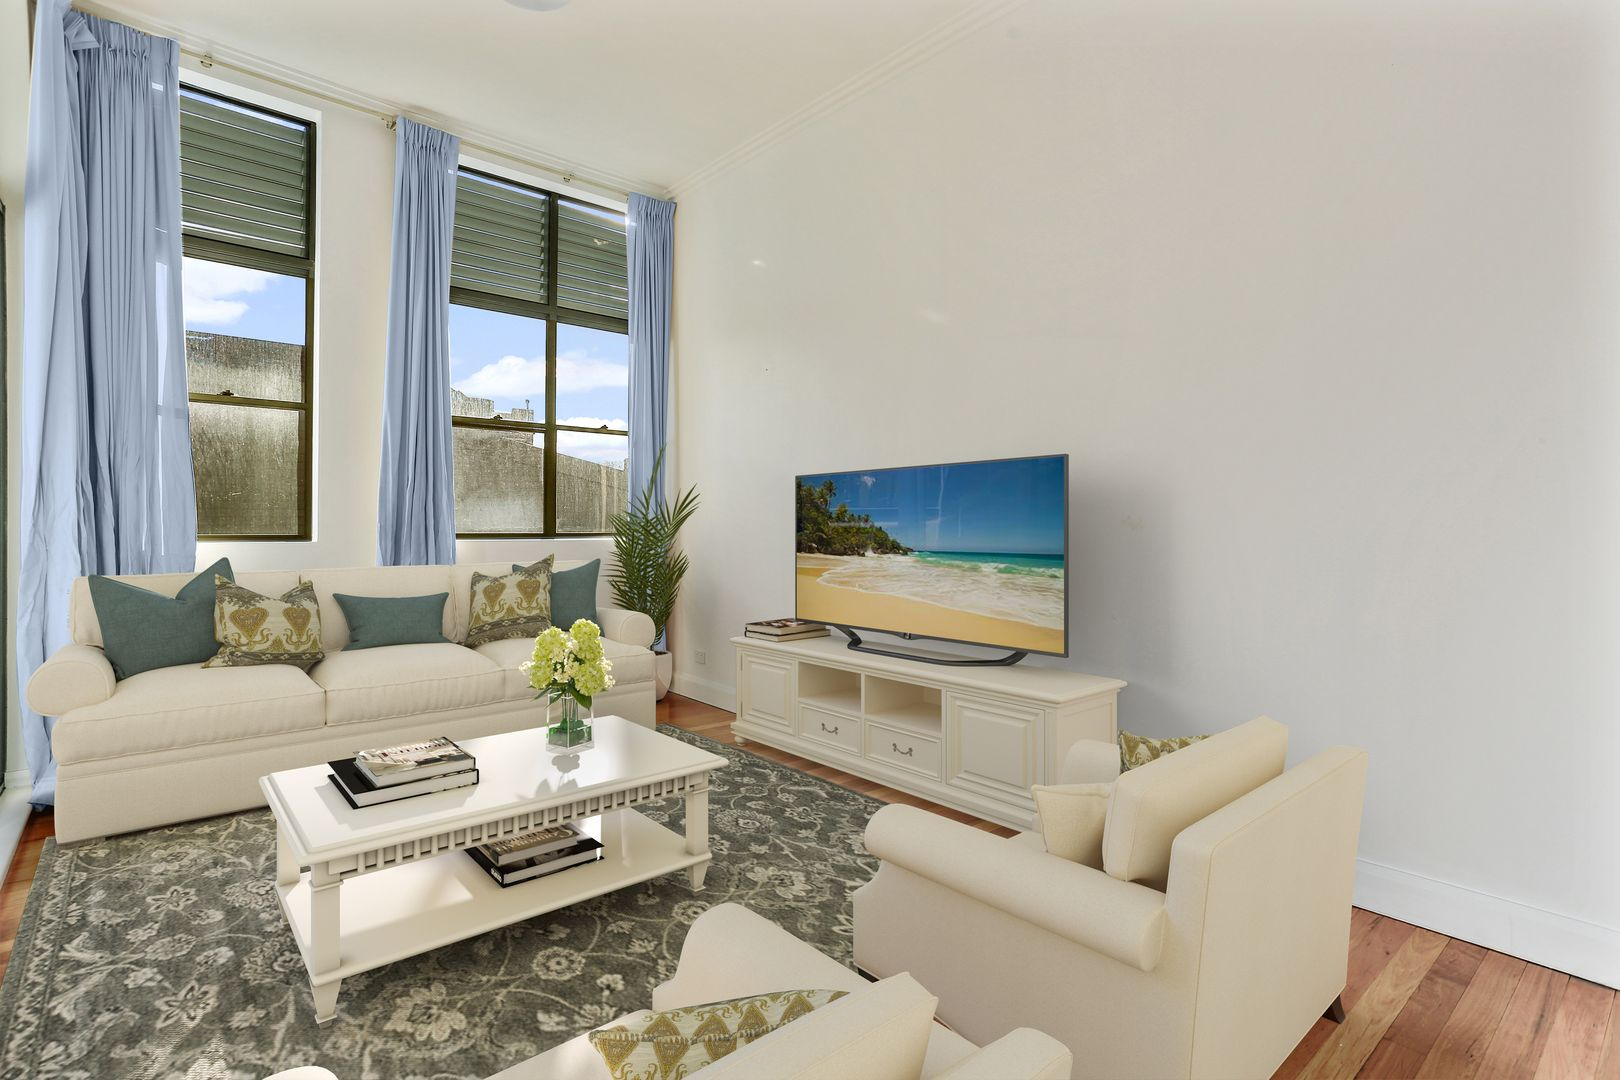 1 bedrooms Apartment / Unit / Flat in 31/62 Booth Street ANNANDALE NSW, 2038